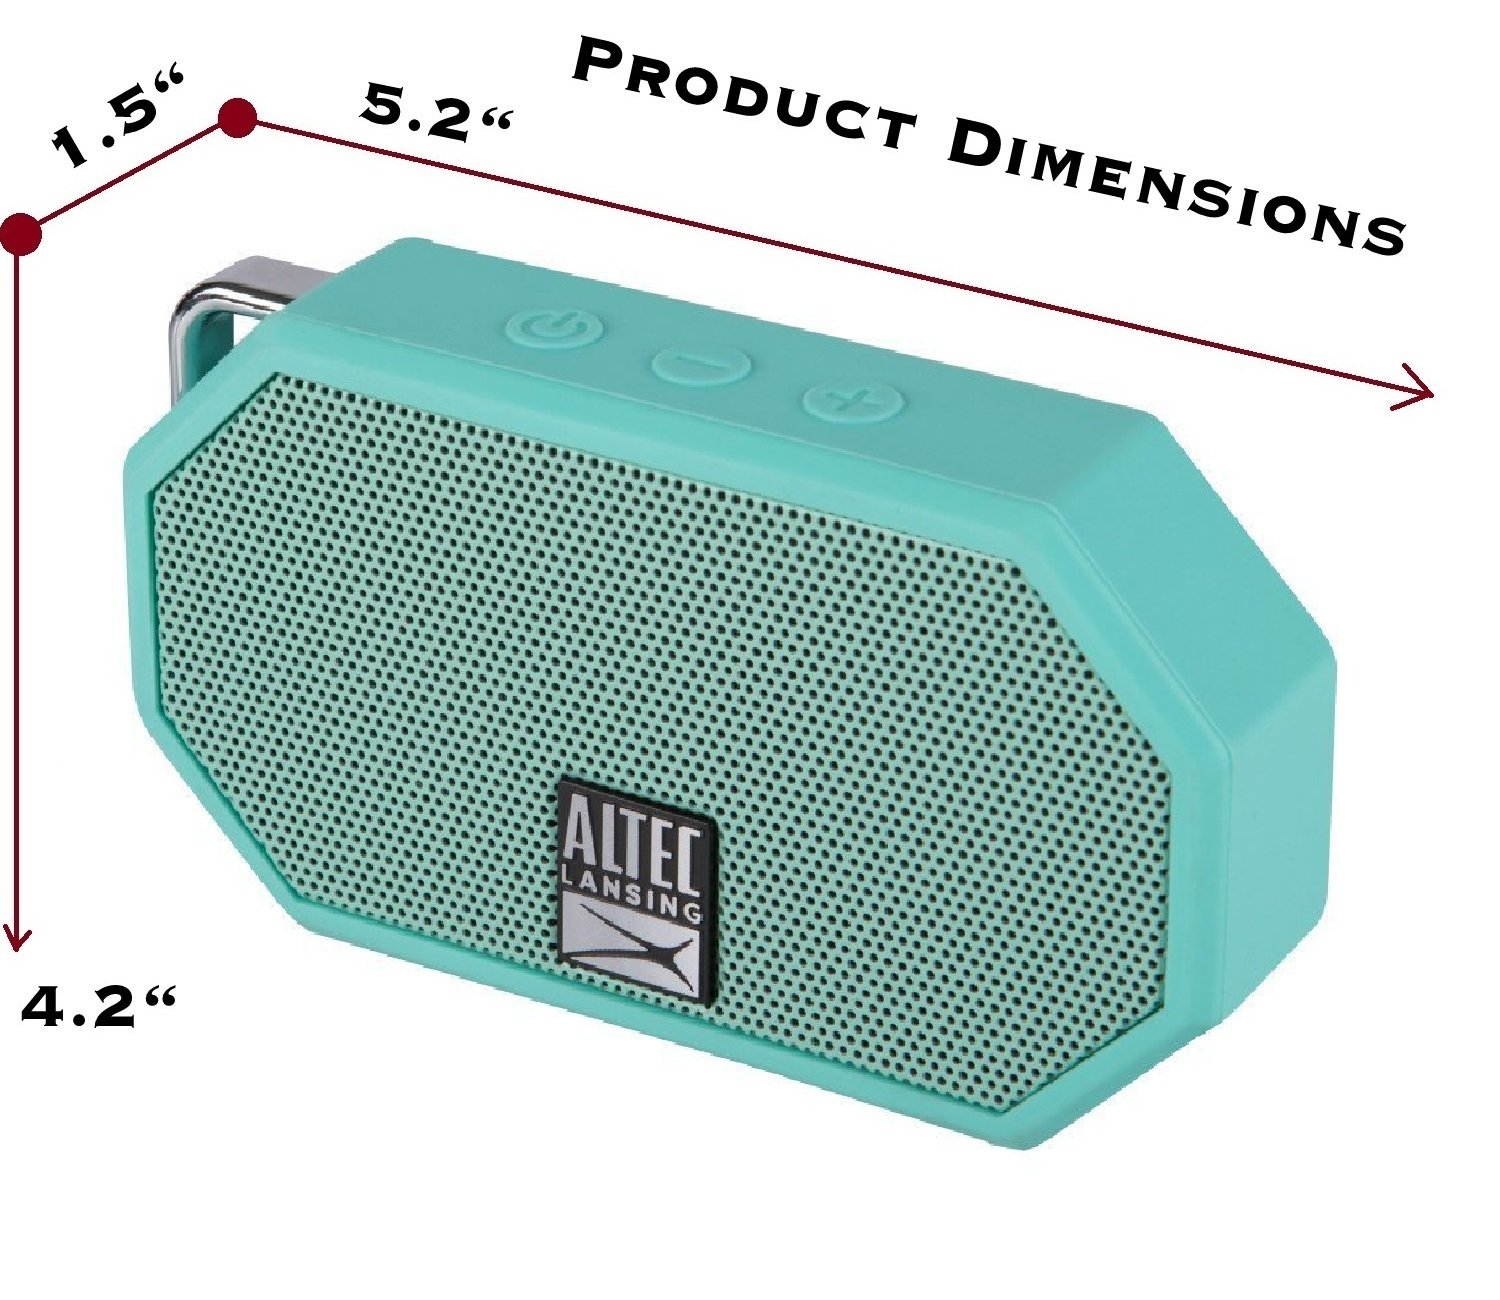 Altec Lansing Waterproof Hands Free Ultra Portable Image 3